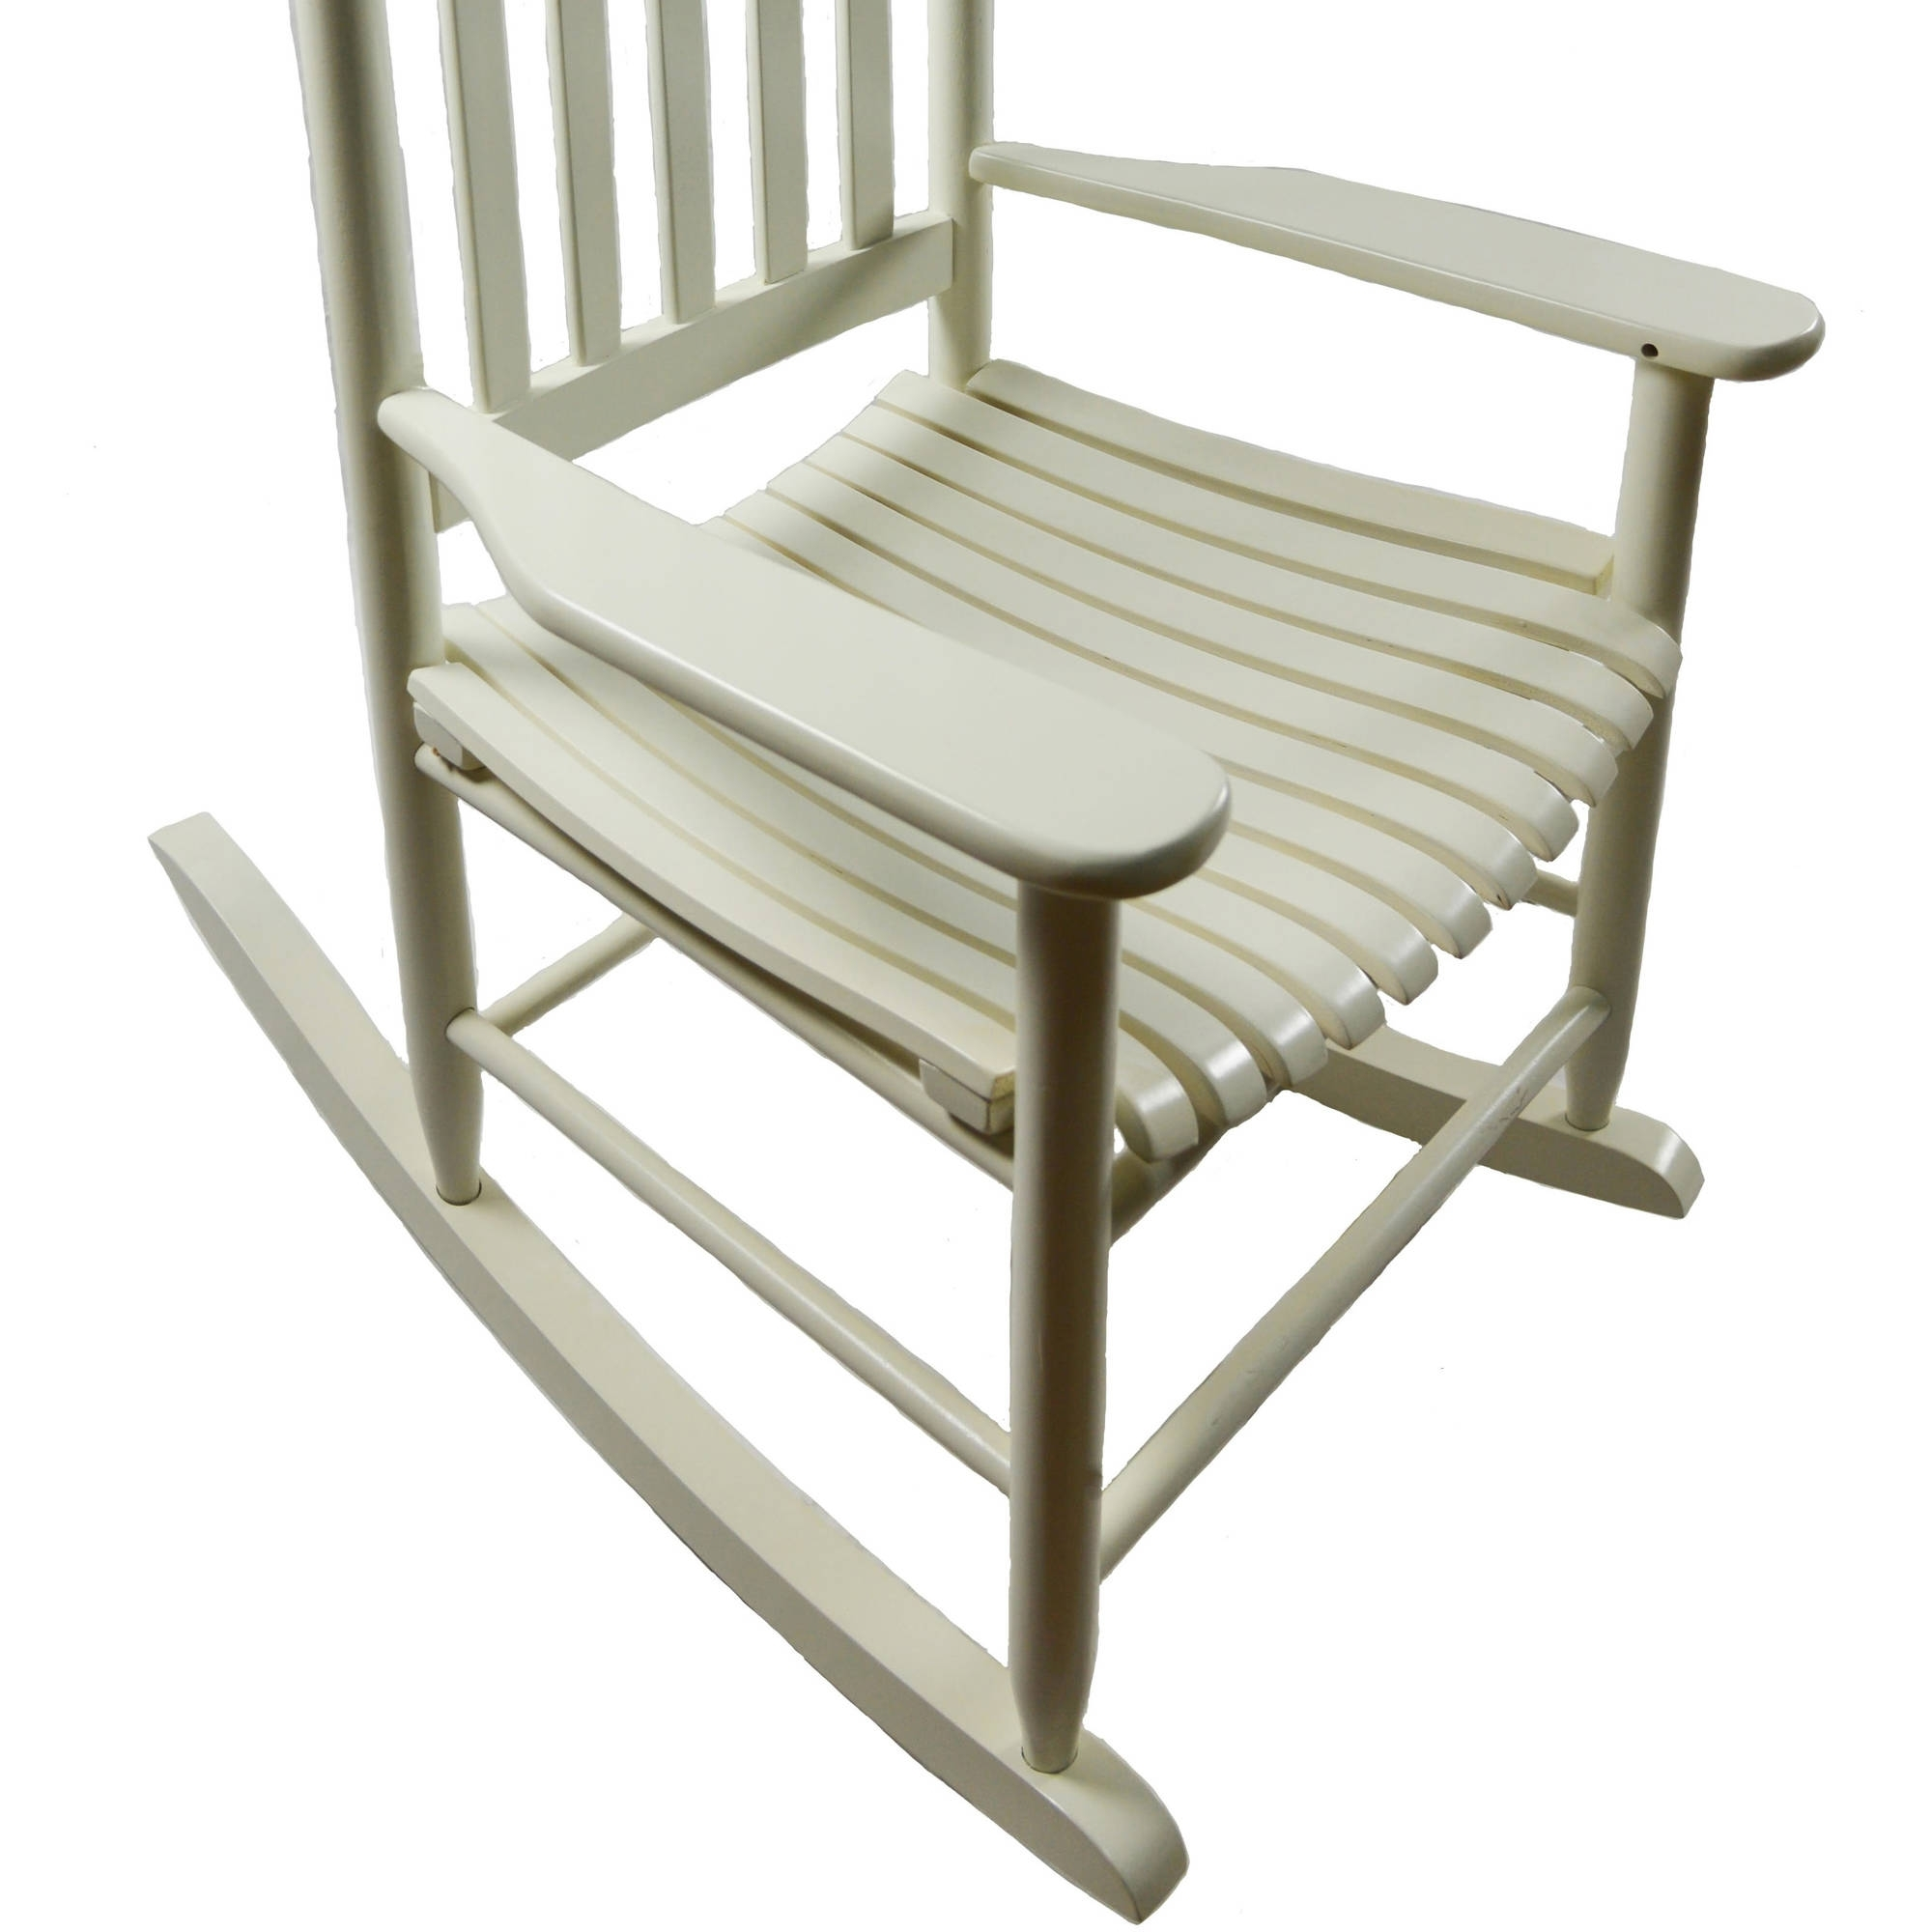 Inspiration about Mainstays Outdoor Wood Rocking Chair – Walmart Pertaining To Rocking Chairs At Walmart (#1 of 15)